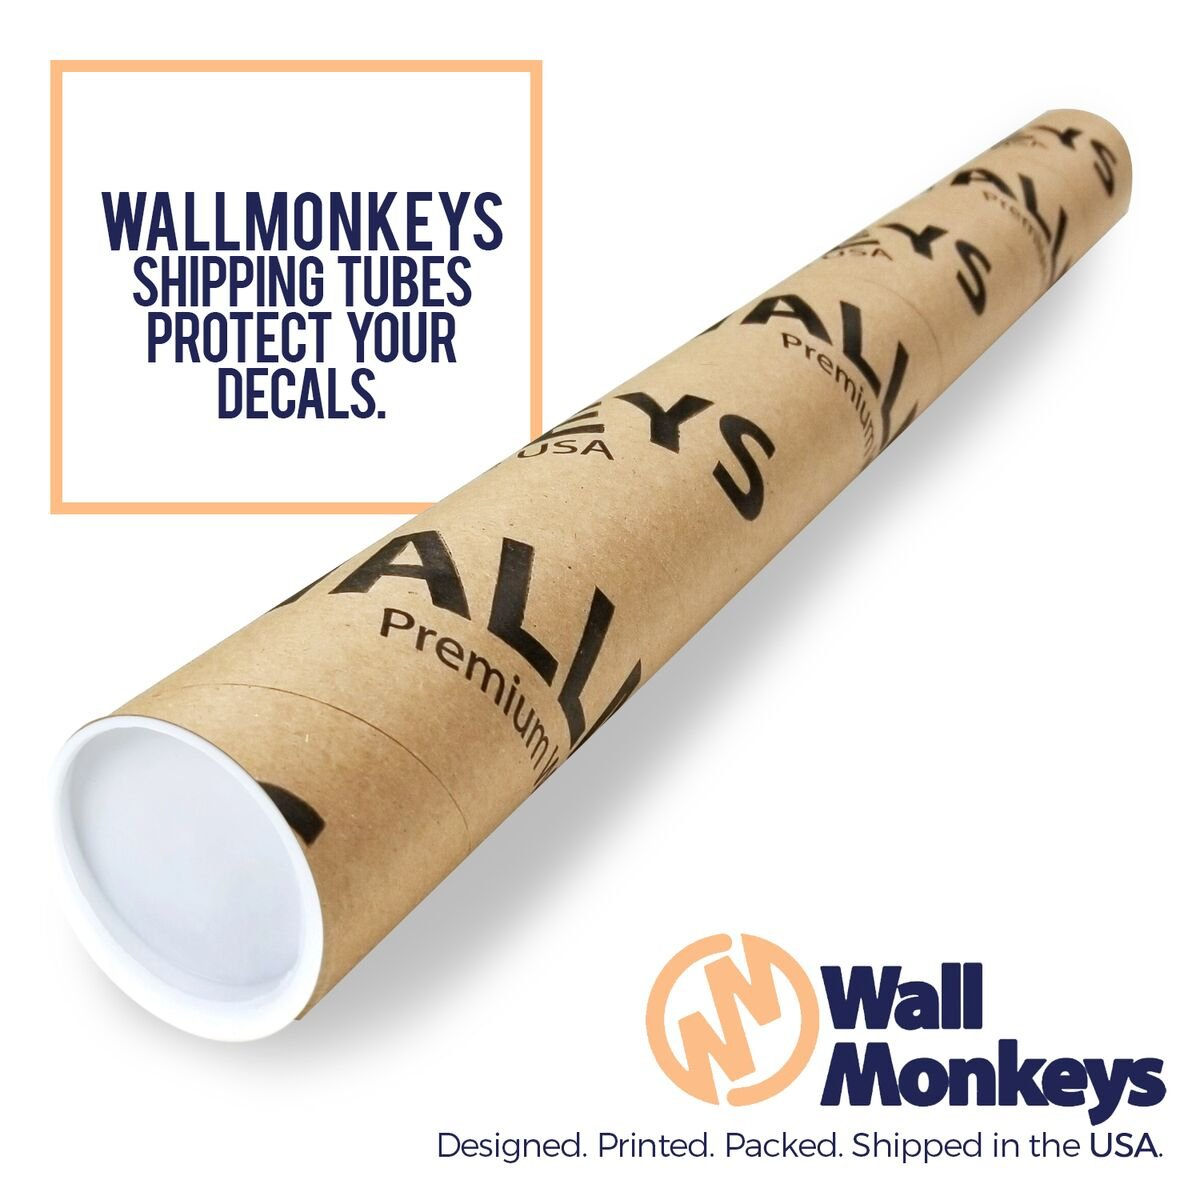 Wallmonkeys Steampunk Vintage Hot Air Wall Decal Peel and Stick Graphic (24 in H x 24 in W) WM106331 by Wallmonkeys (Image #3)